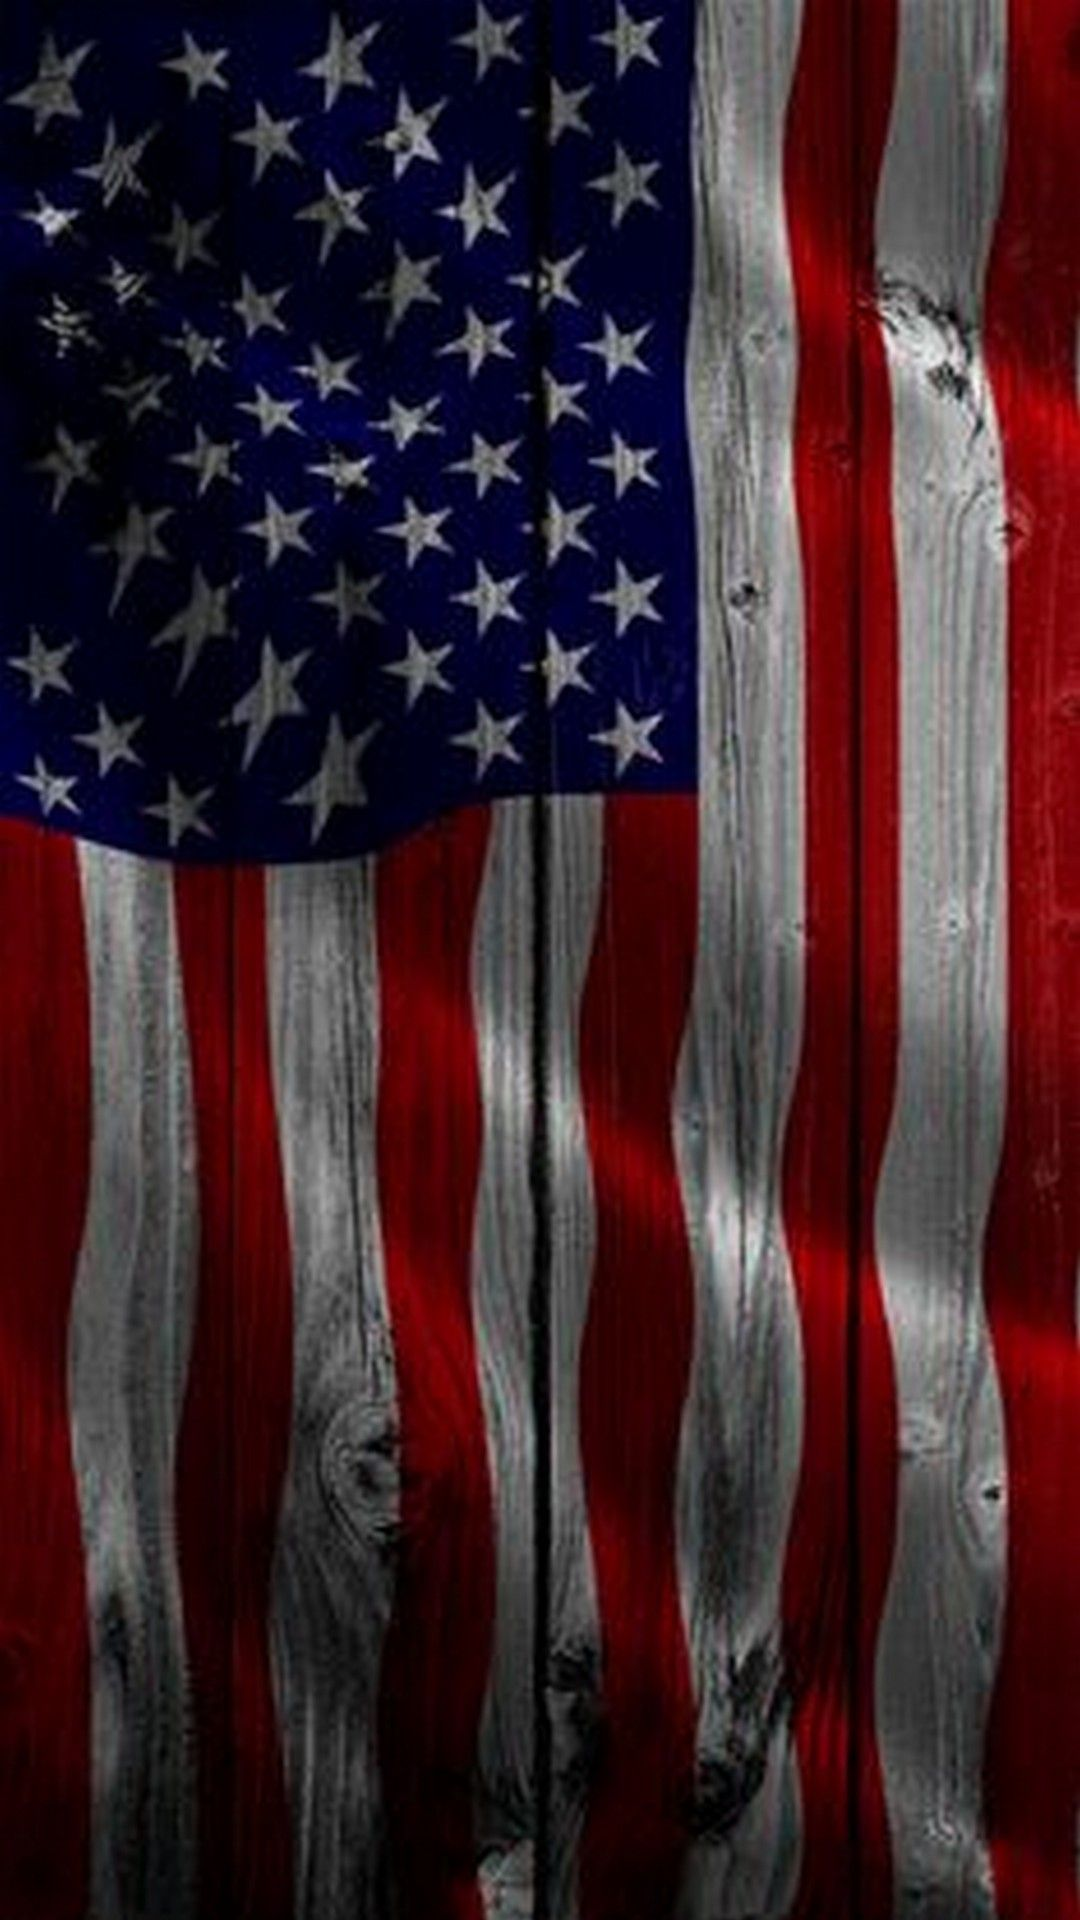 Phones Wallpaper American Flag American Flag Wallpaper Phone